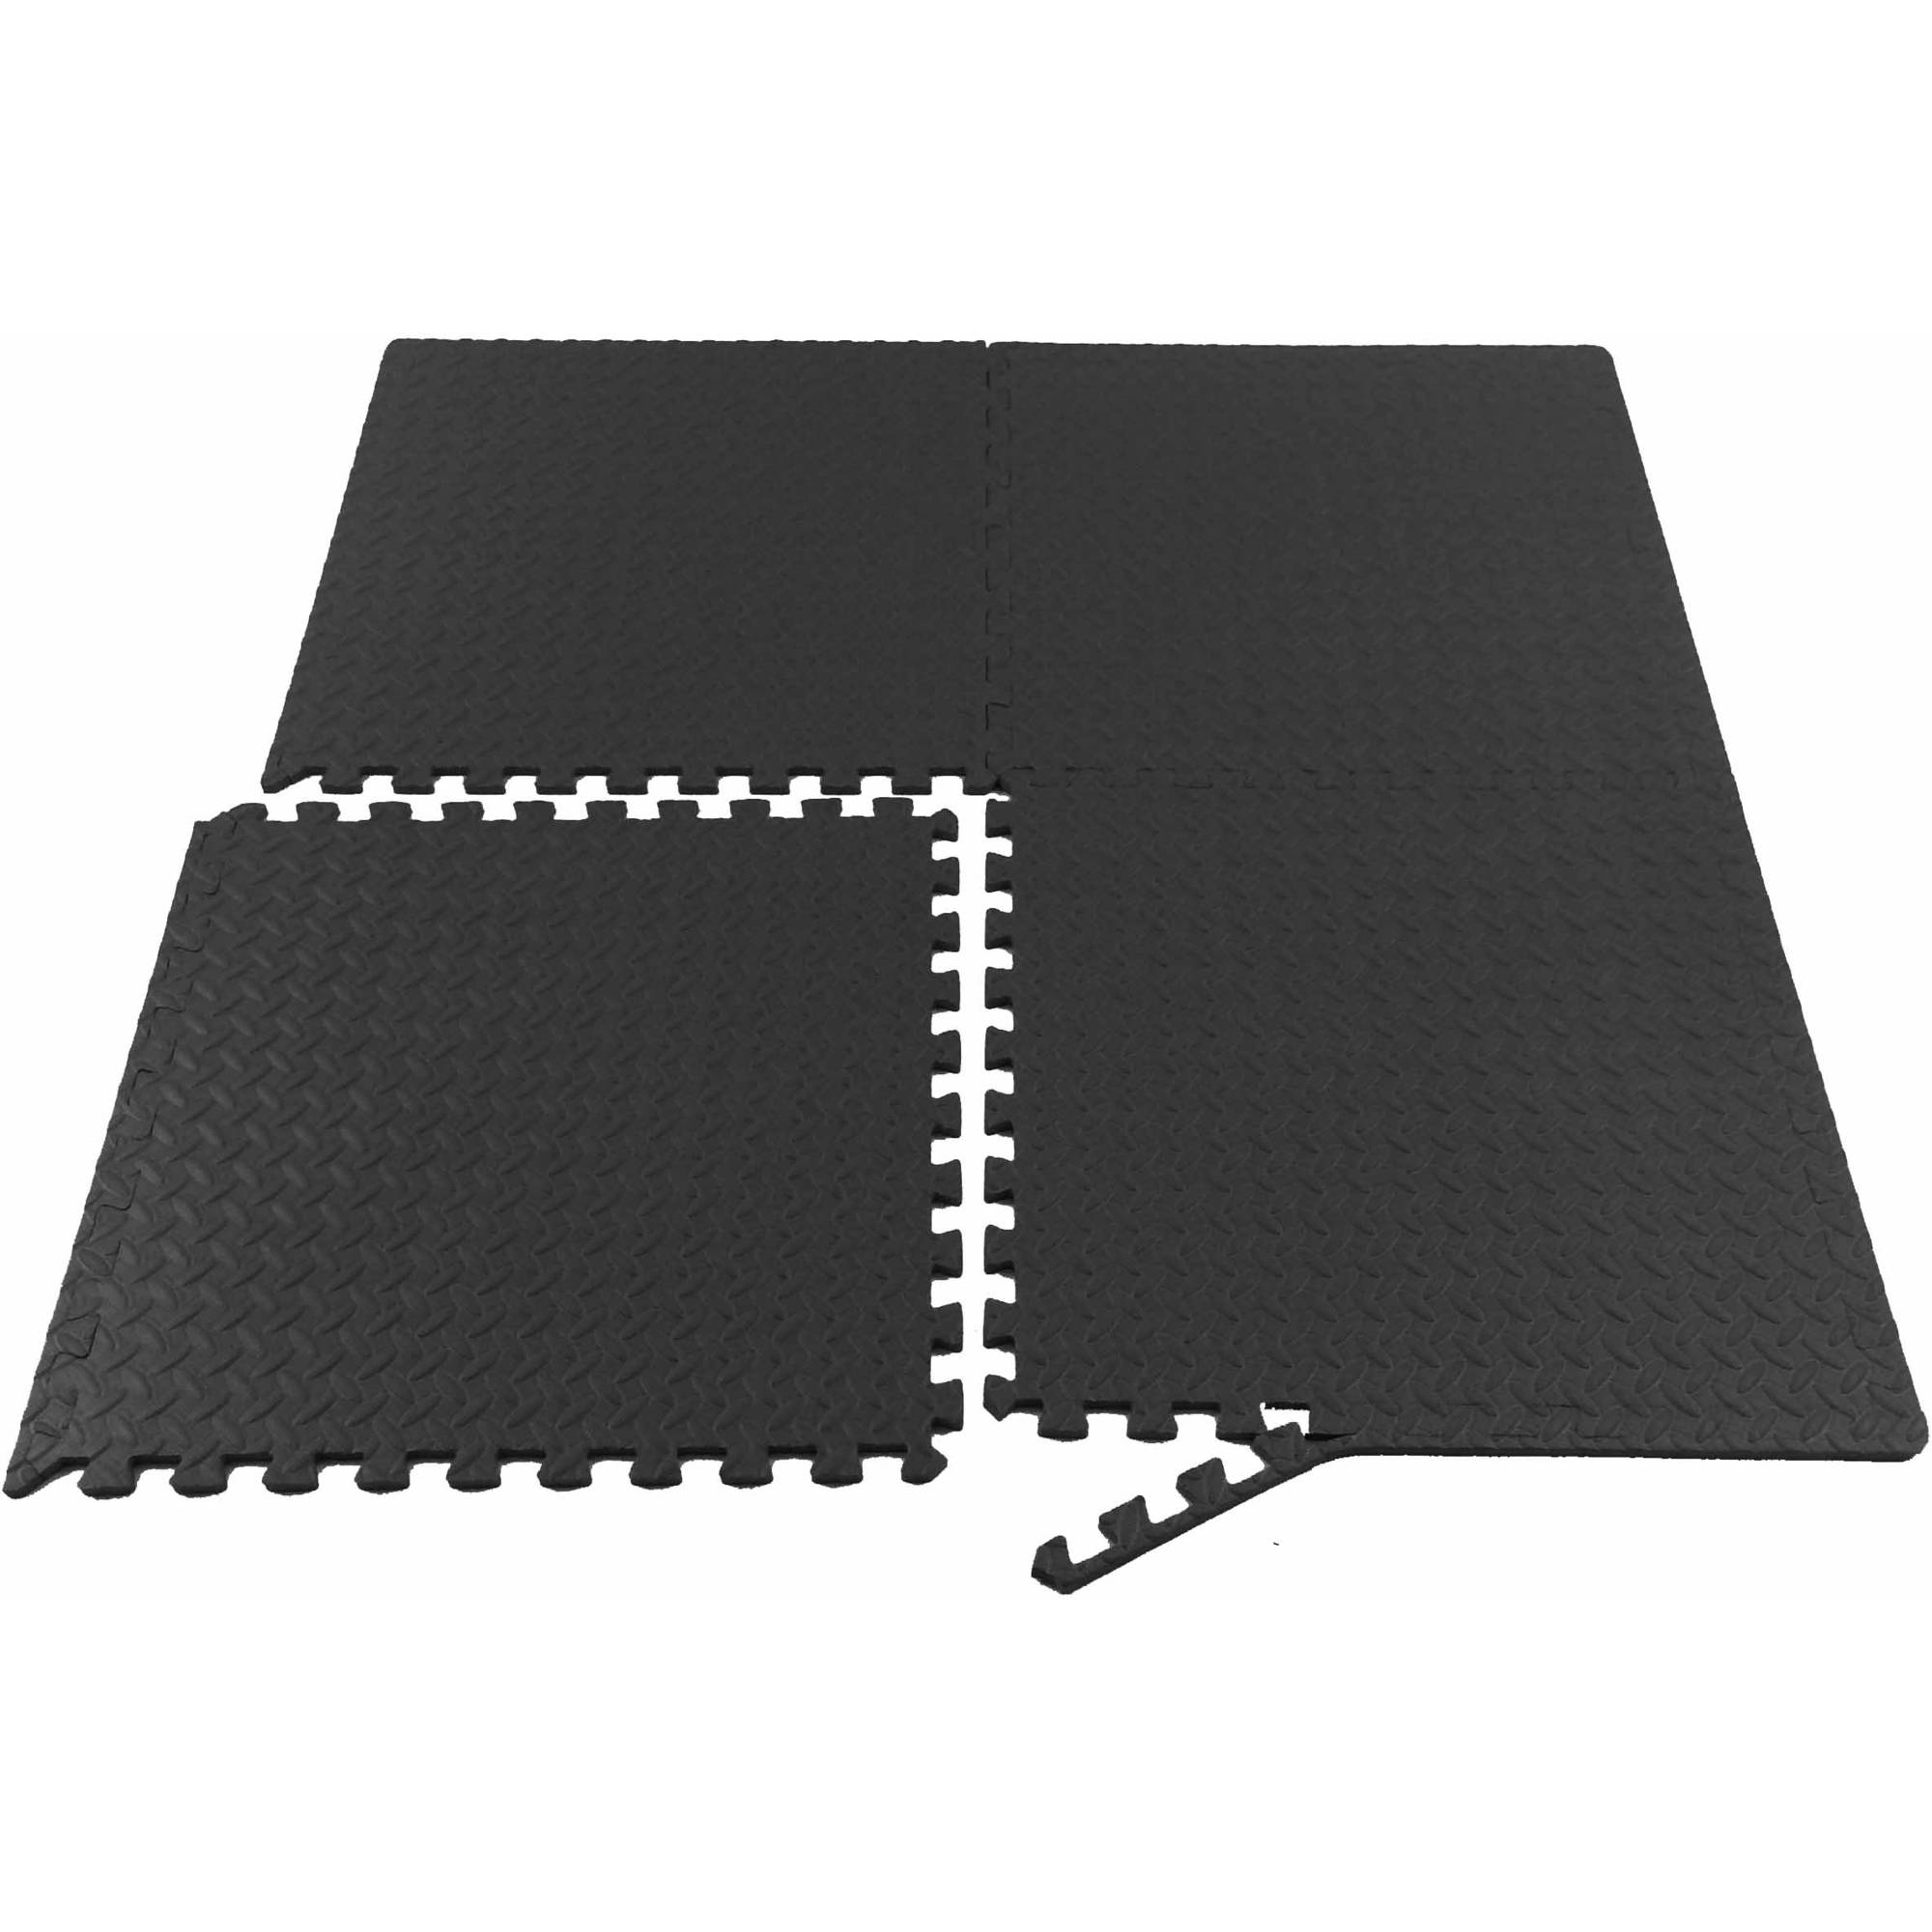 Prosource Puzzle Exercise Mat Eva Foam Interlocking Tiles Com